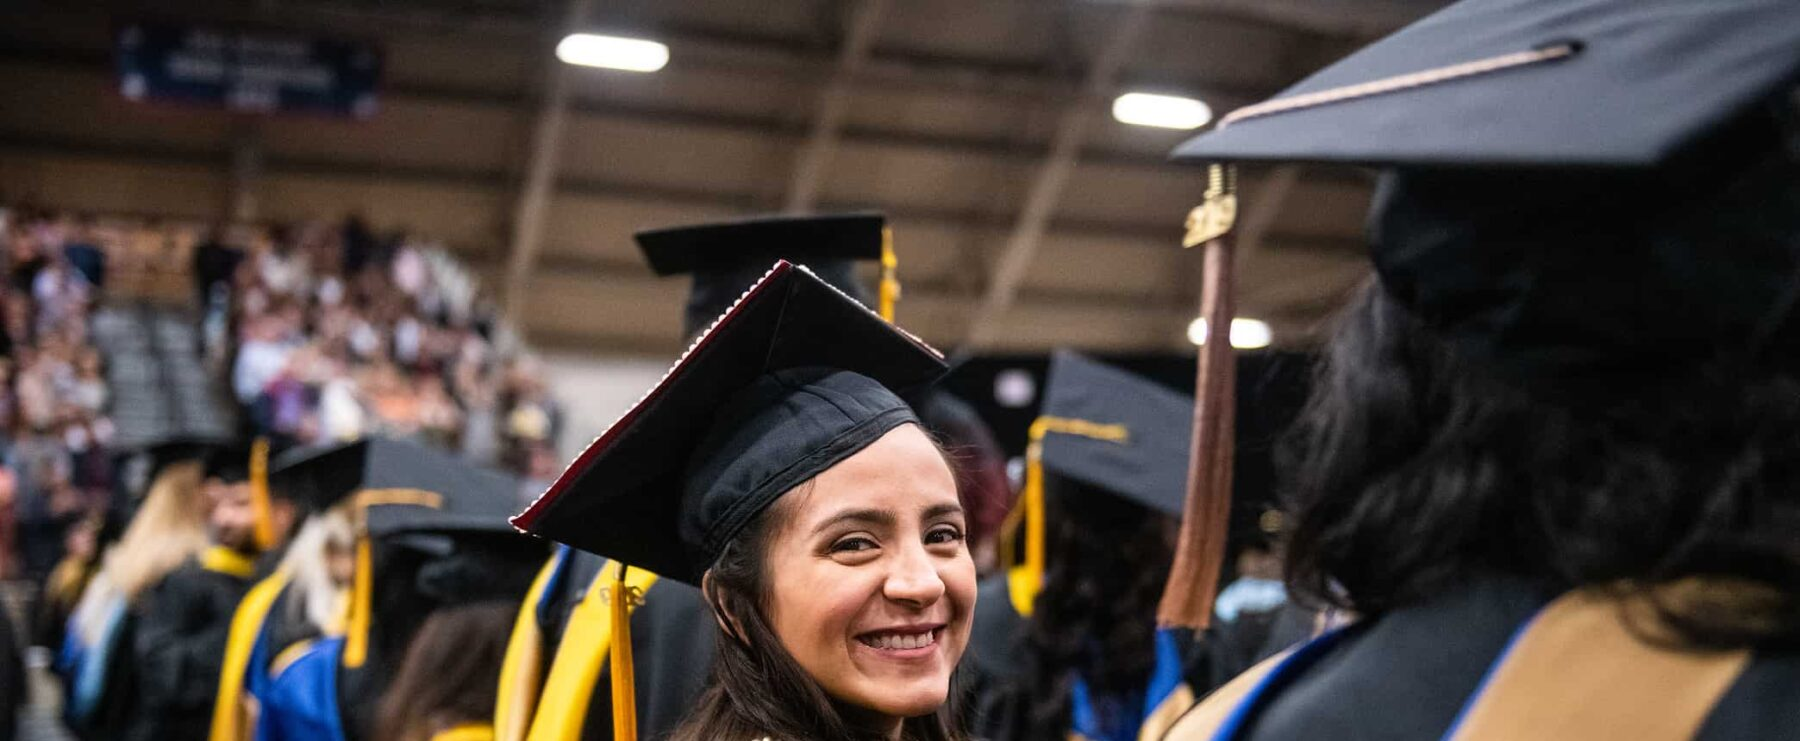 Graduate student smiling at the camera during graduation.